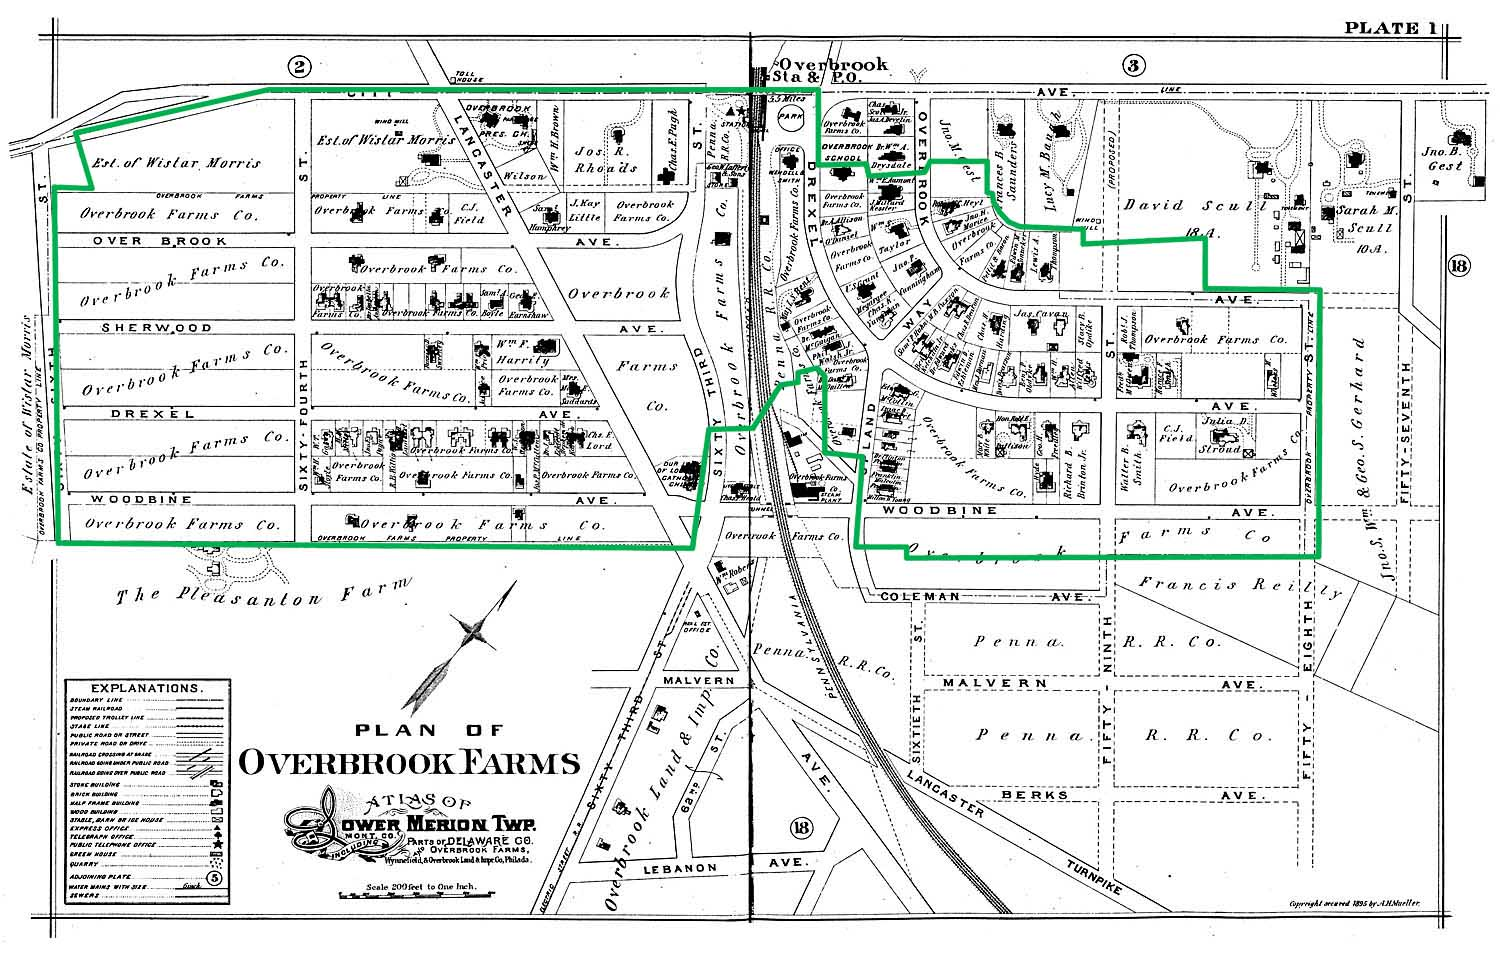 (1896 Plan of Overbrook Farms with rough outline of proposed historic district boundaries overlaid. (Click to enlarge) | 1896 Map from Lower Merion Public Library )